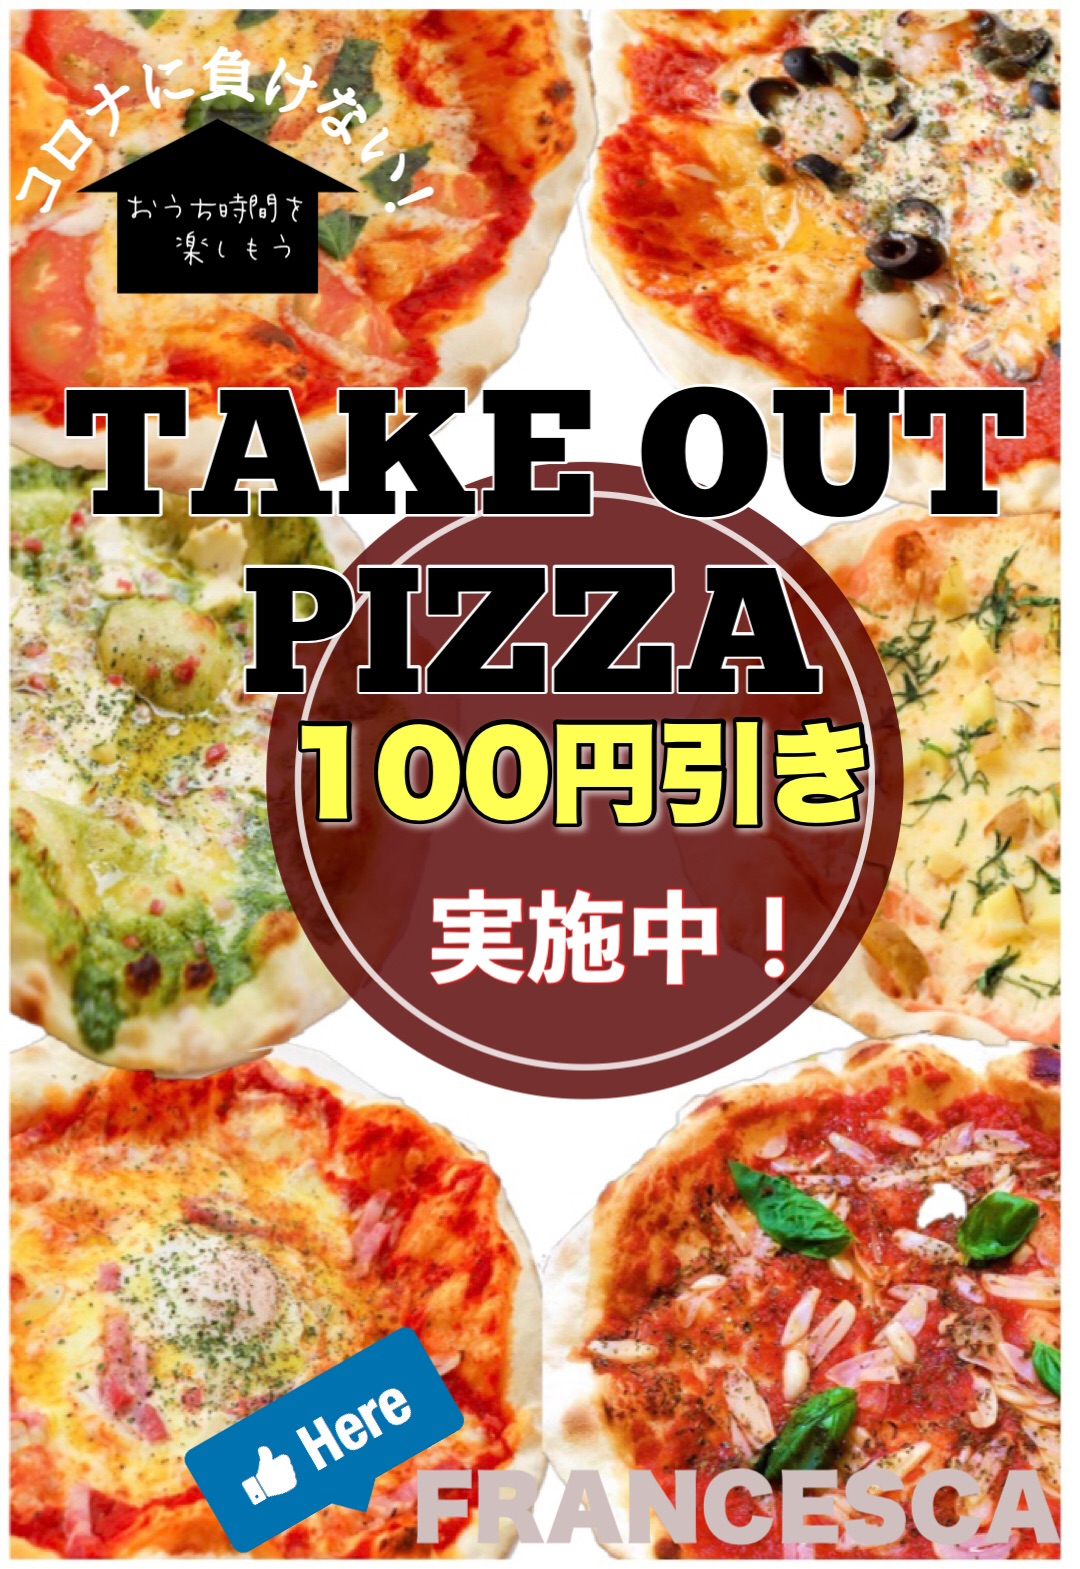 TAKE OUT ピザ¥100引き